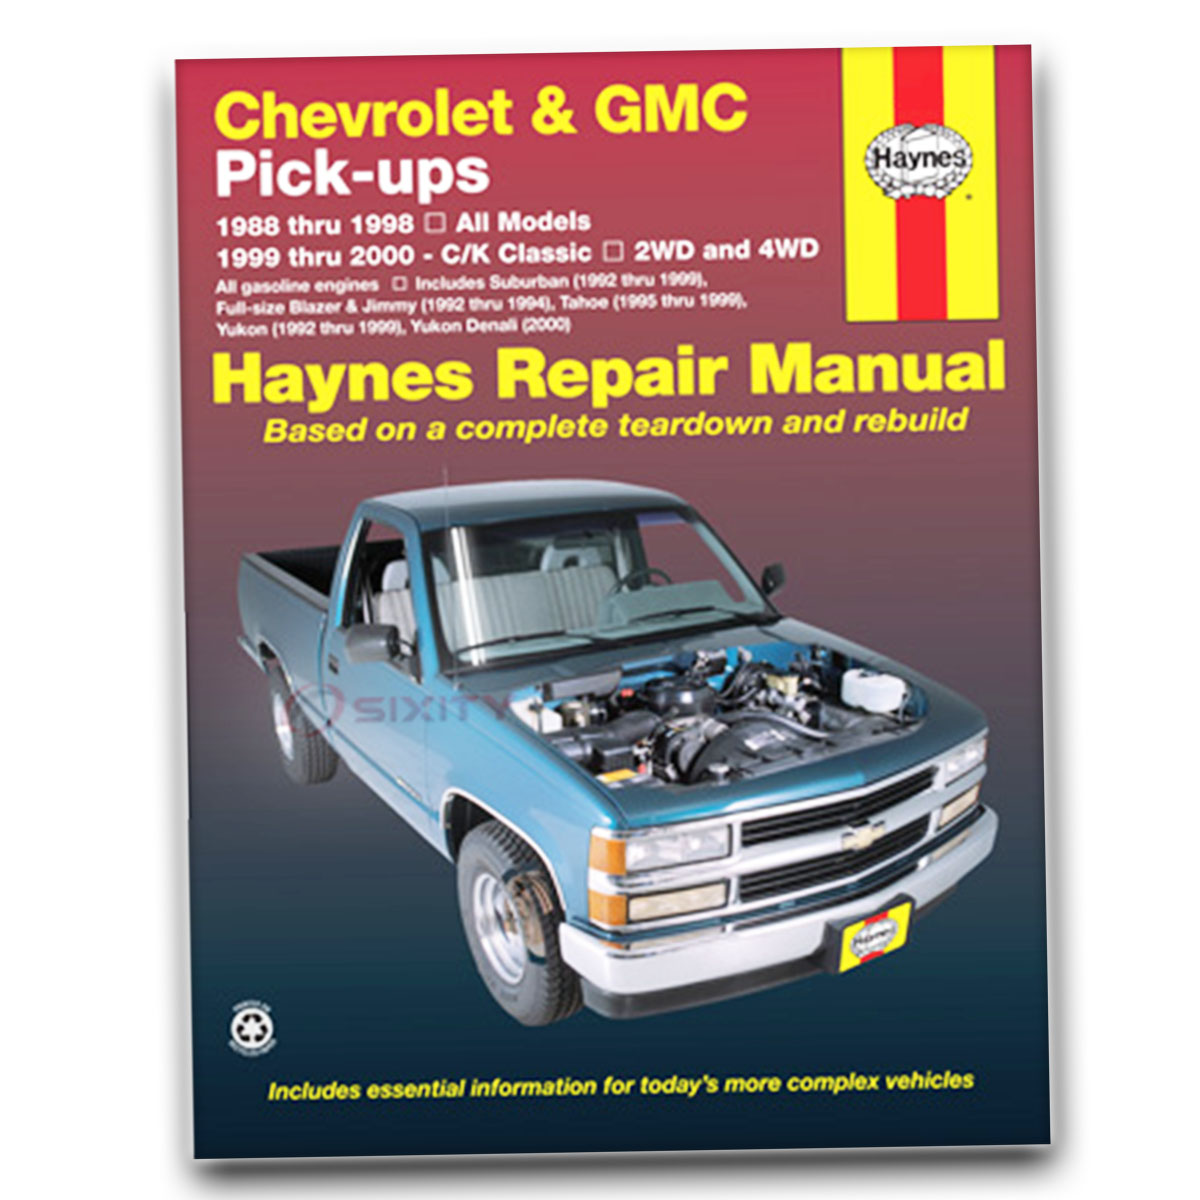 chevrolet suburban repair manual chevy k1500 suburban haynes repair manual ls silverado lt base shop service fx